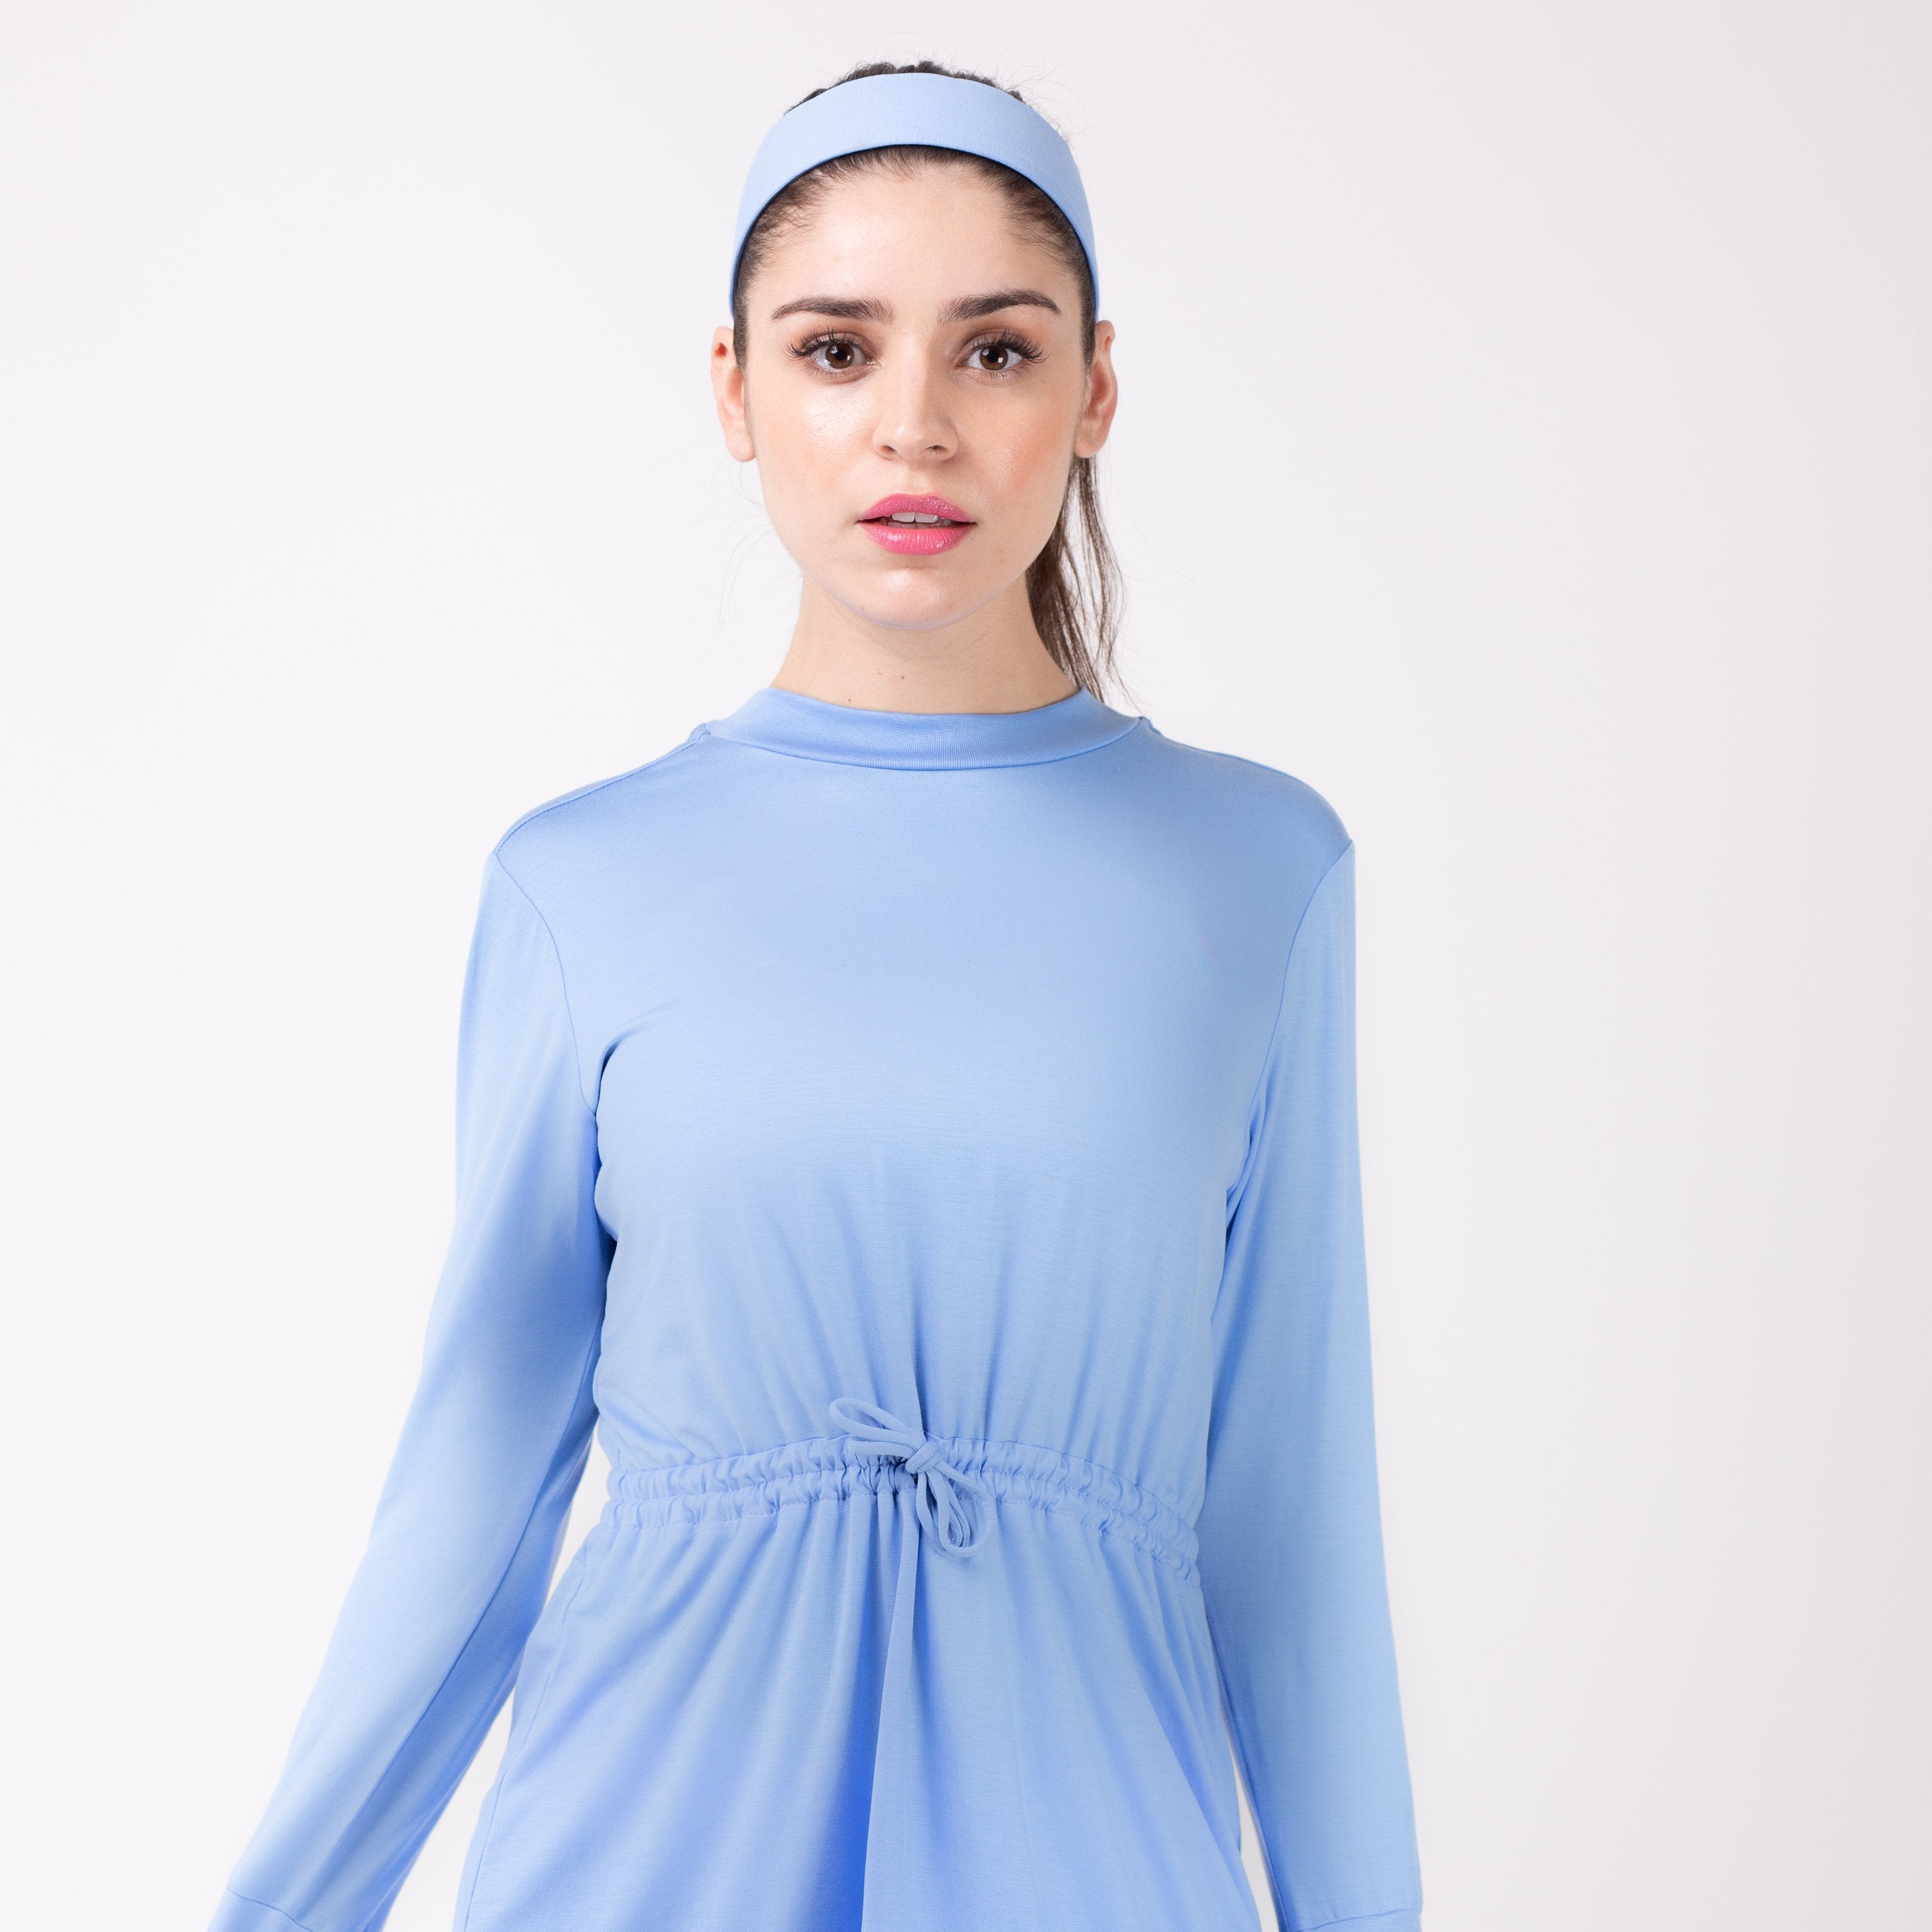 Woman in light blue shirt with matching sky blue HAWA headband.